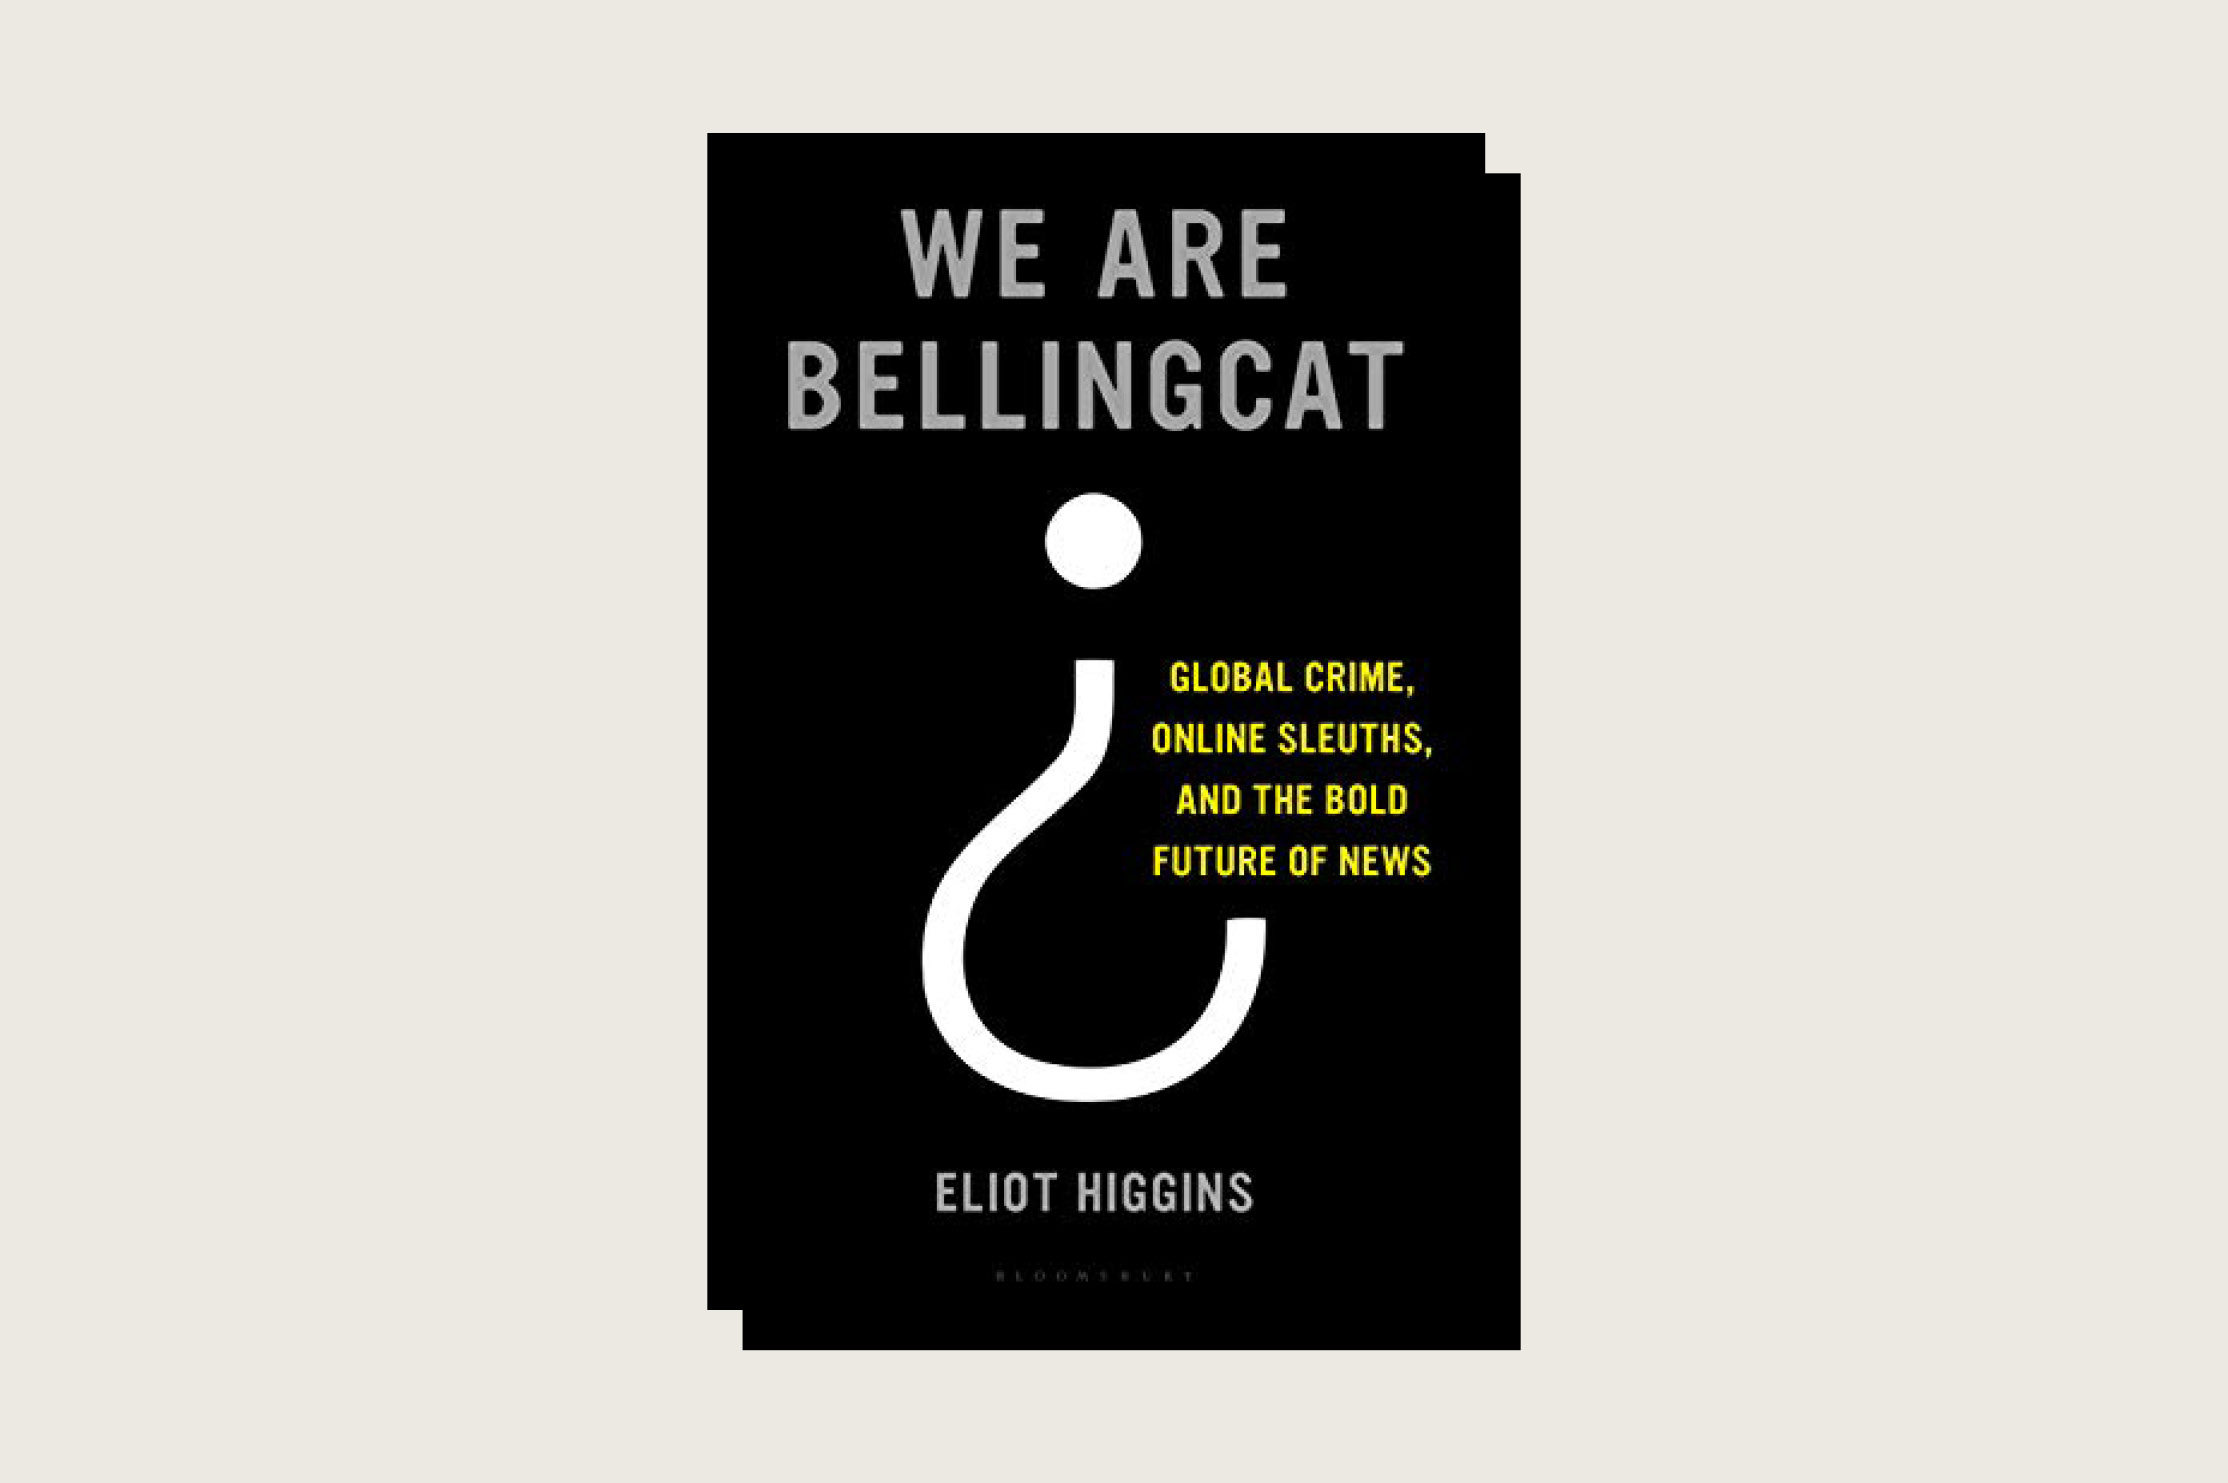 We Are Bellingcat: Global Crime, Online Sleuths, and the Bold Future of News, Eliot Higgins, Bloomsbury Publishing, 272 pp., .20, March 2021